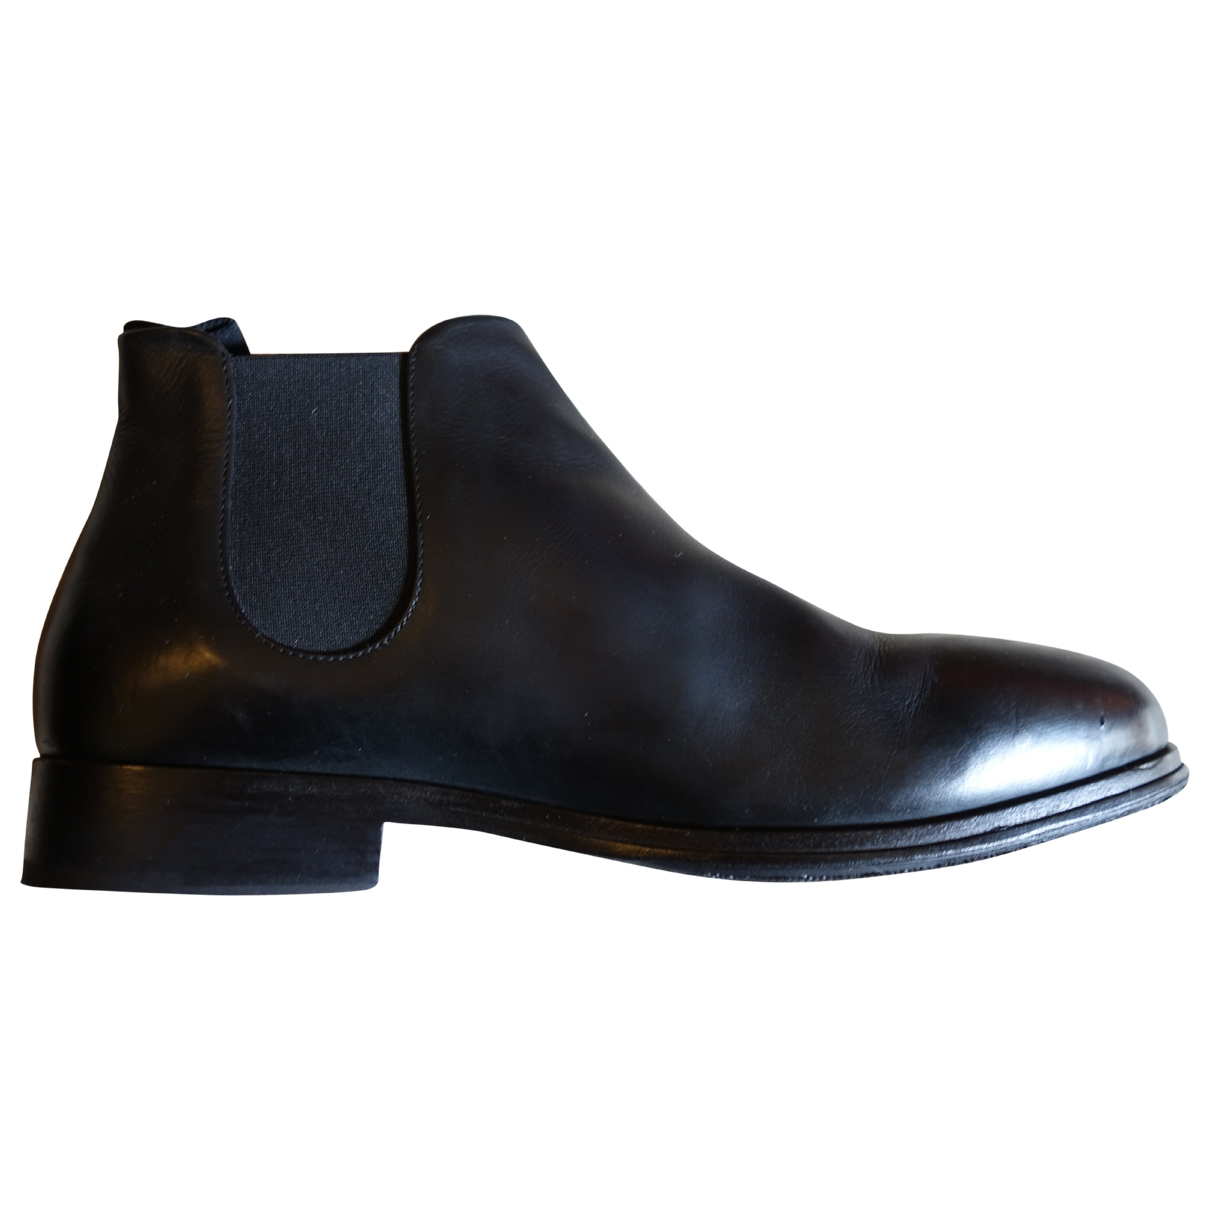 Marsèll \N Black Leather Boots for Men 43.5 EU